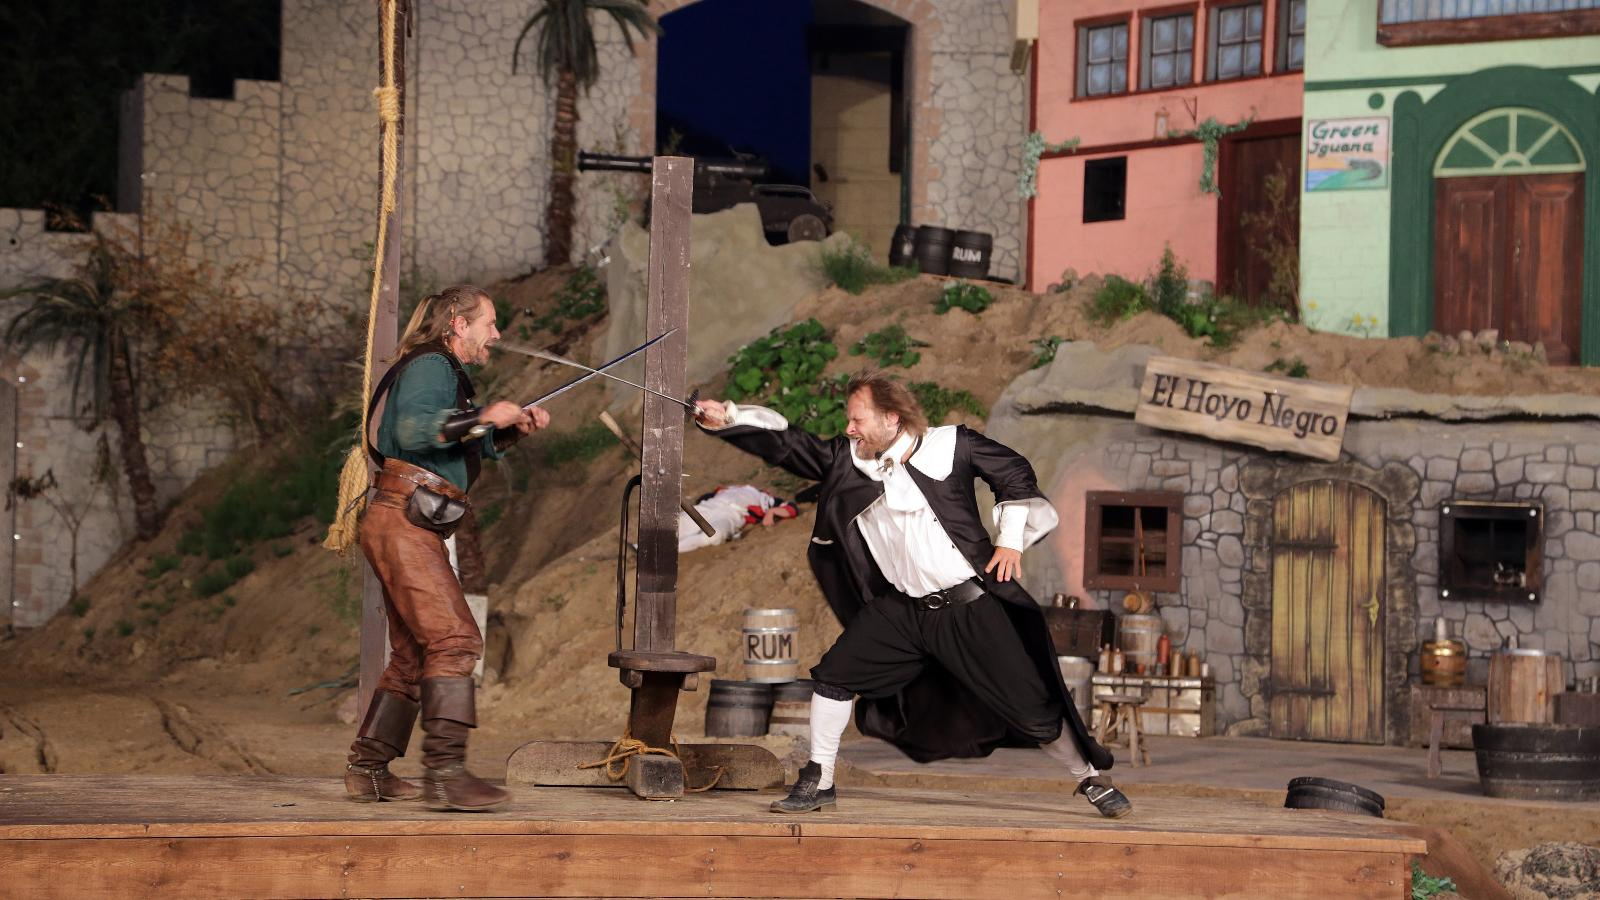 Piraten Action-Openair-Theater -